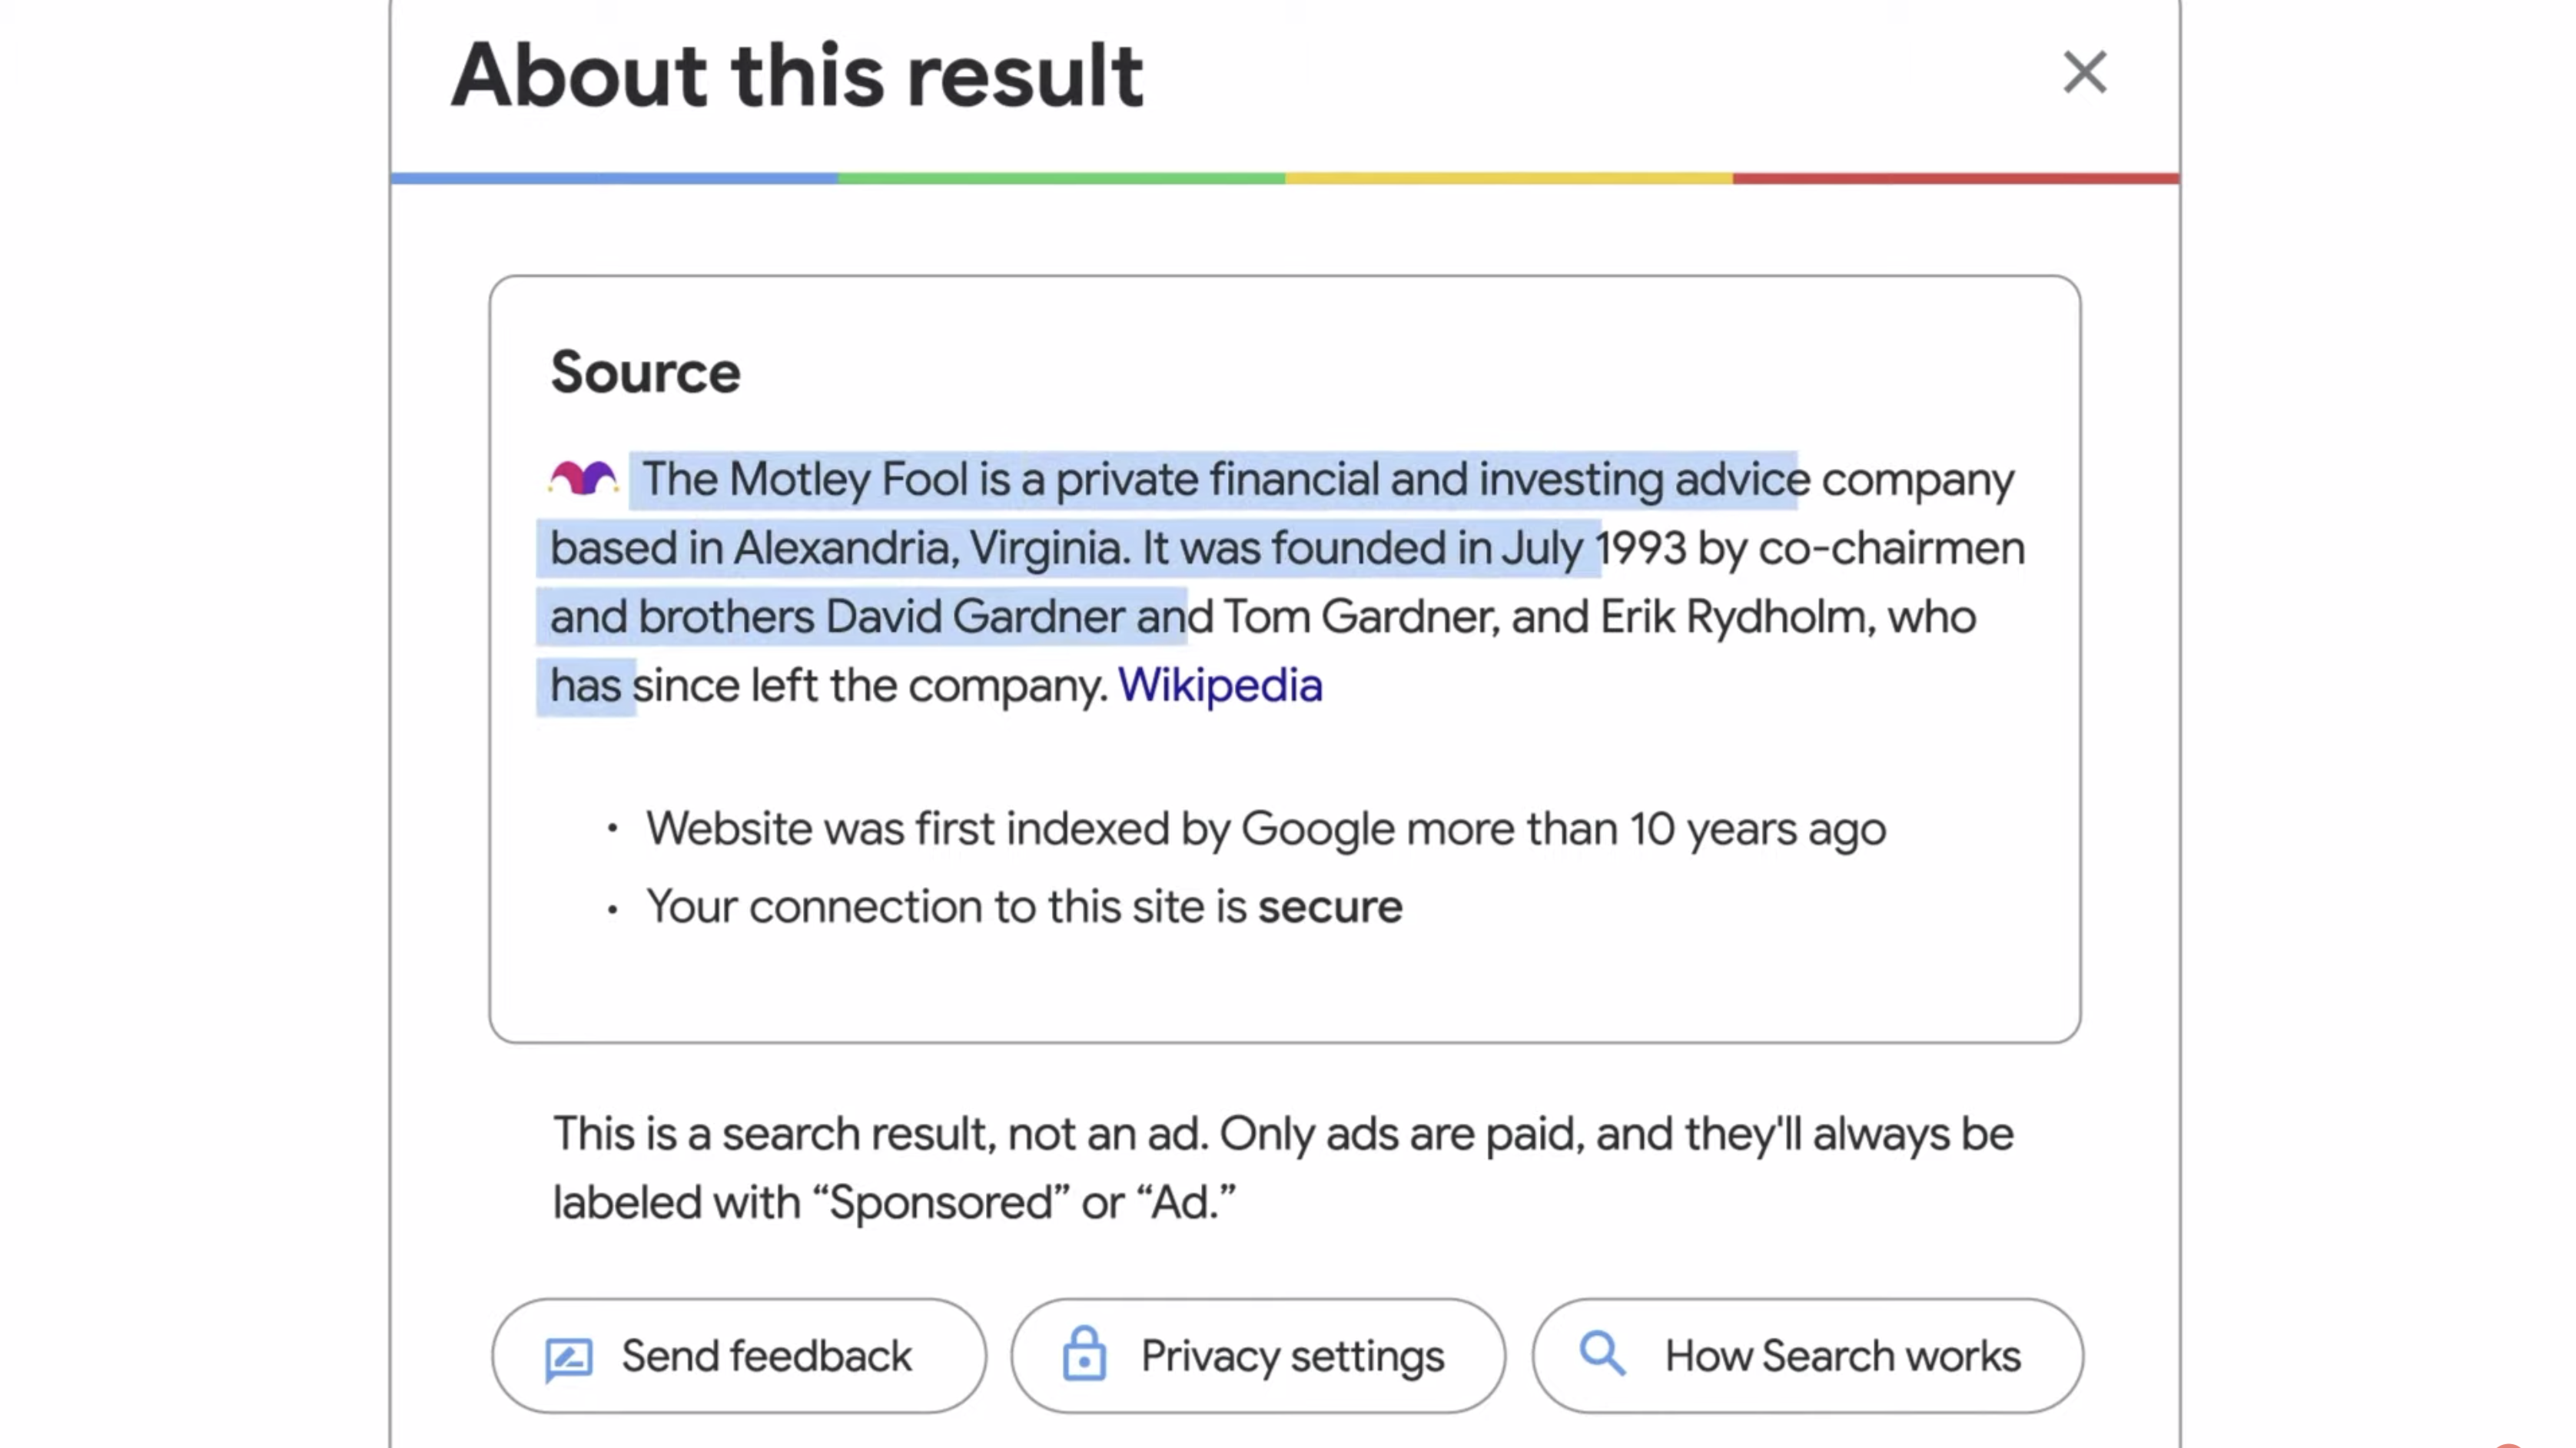 Google IO 2021 — about this result